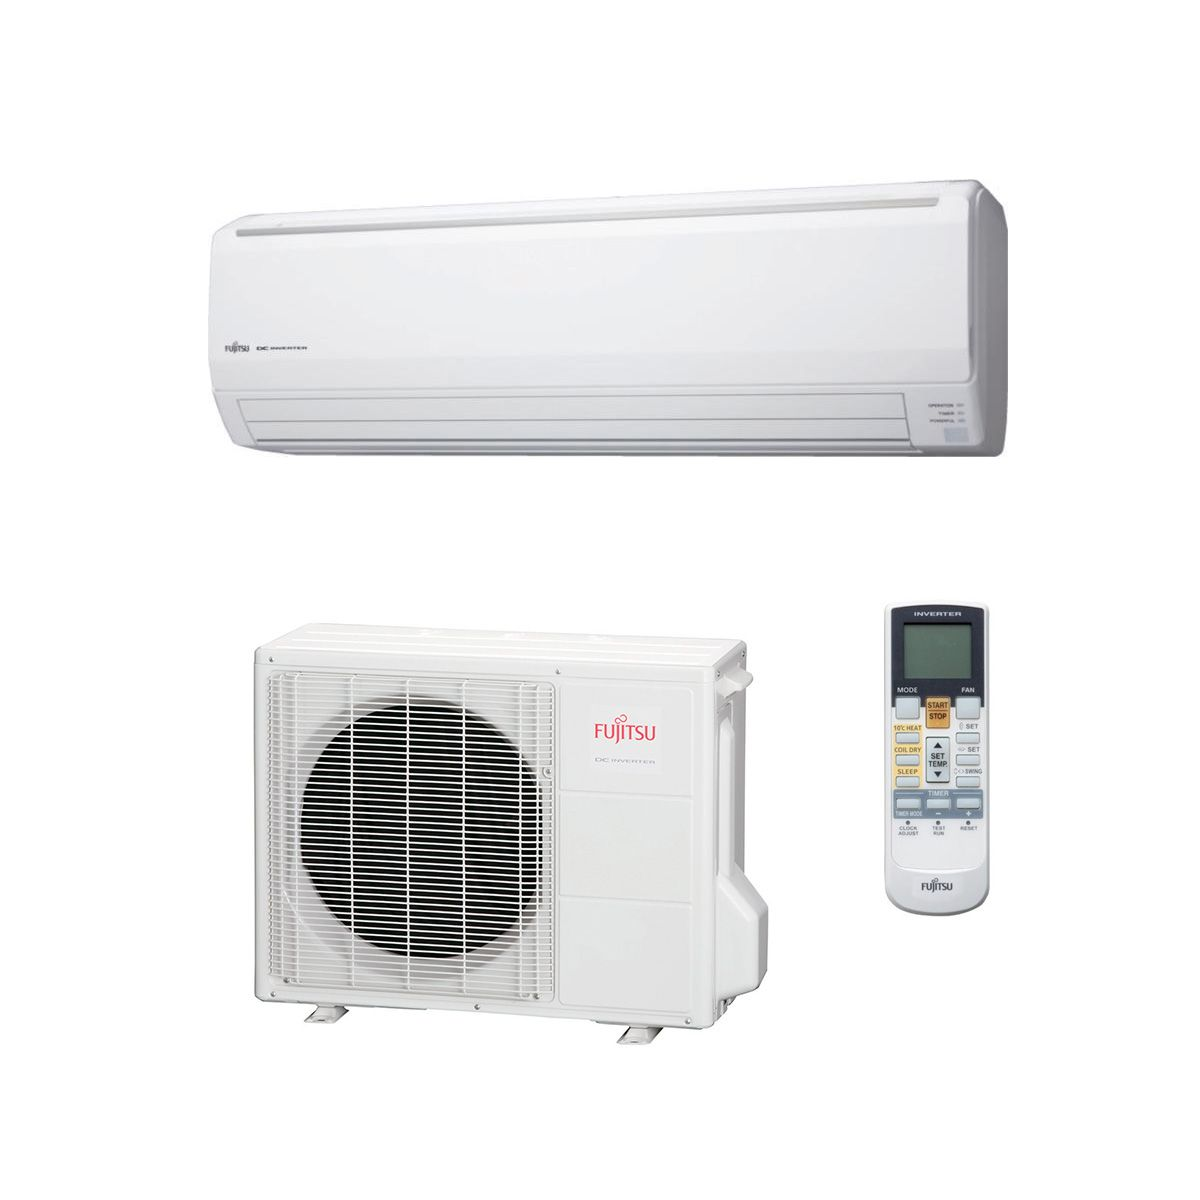 Wall Mounted Heating And Cooling Units : Fujitsu air conditioning asyg lfca wall mounted heat pump